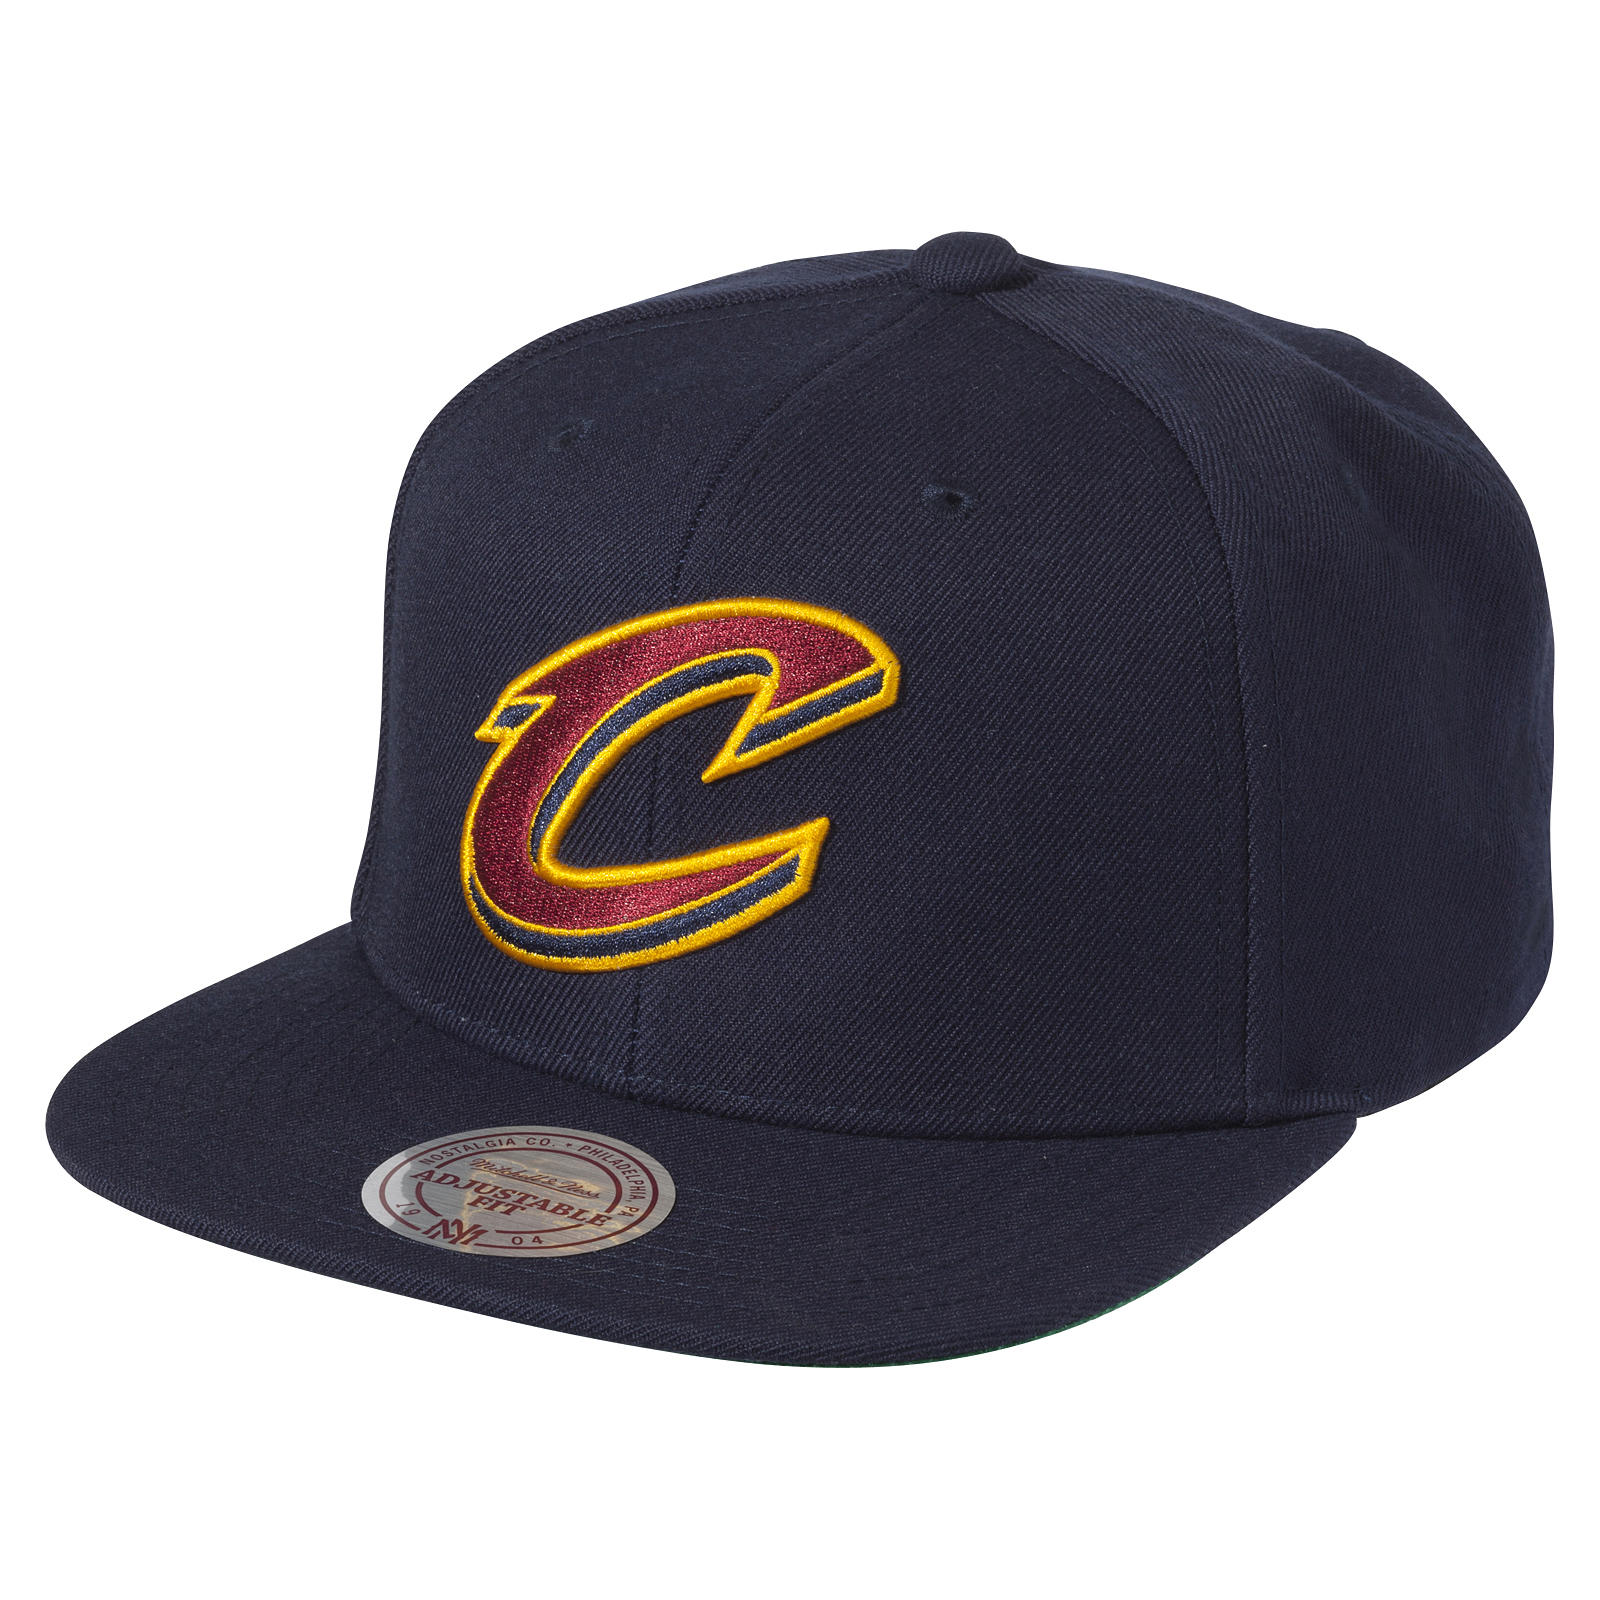 Wool Solid Snapback Cleveland Cavaliers 39ec8940408a